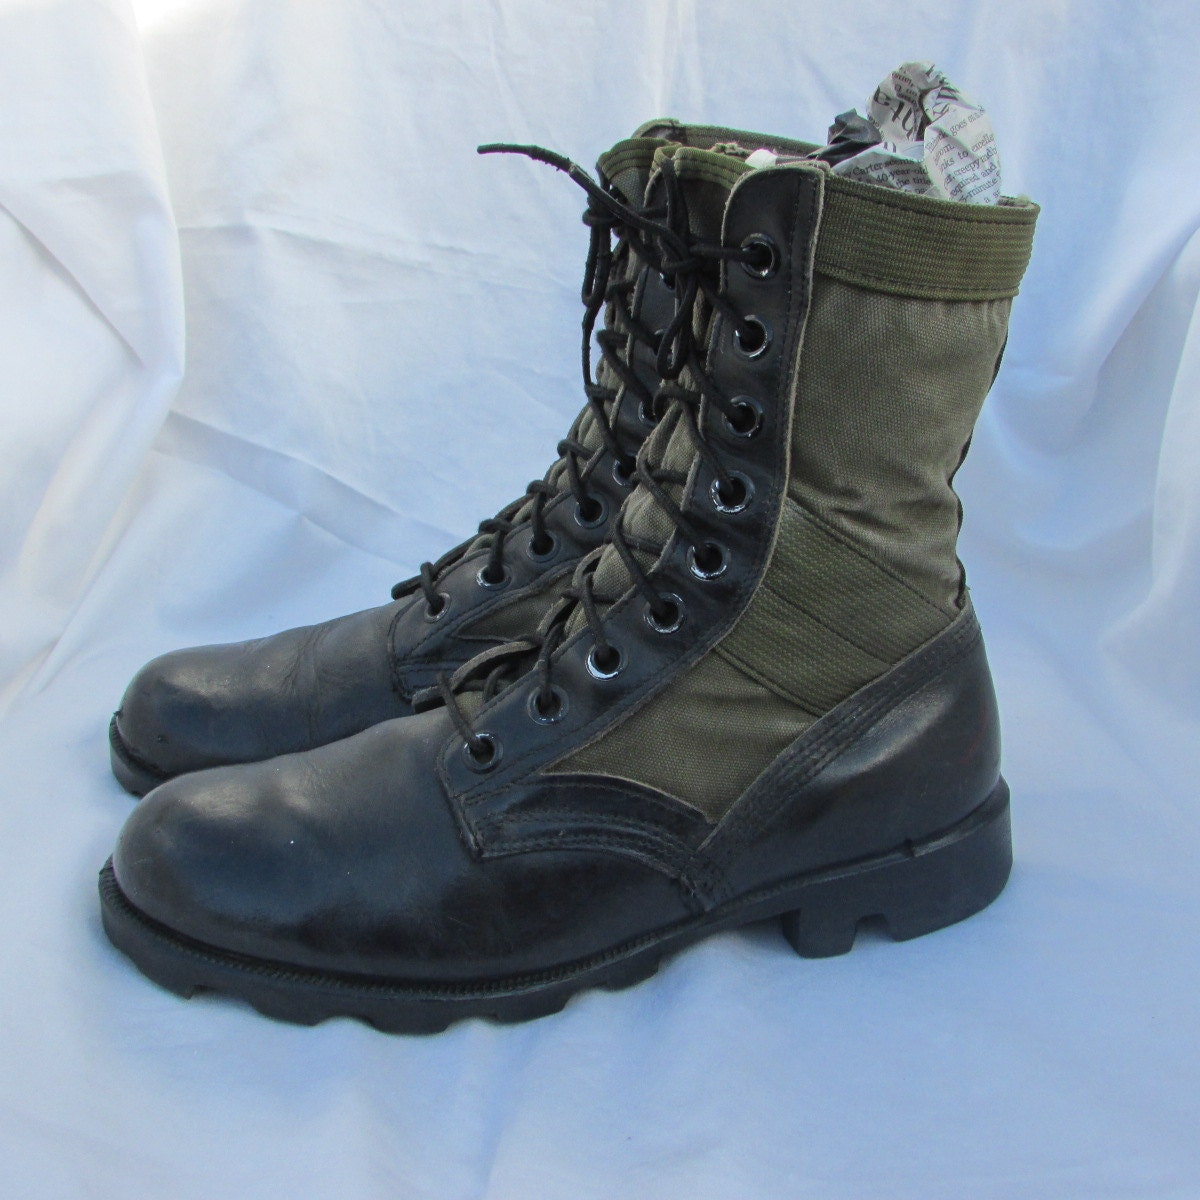 mens 8 womens 10 black leather canvas combat boots